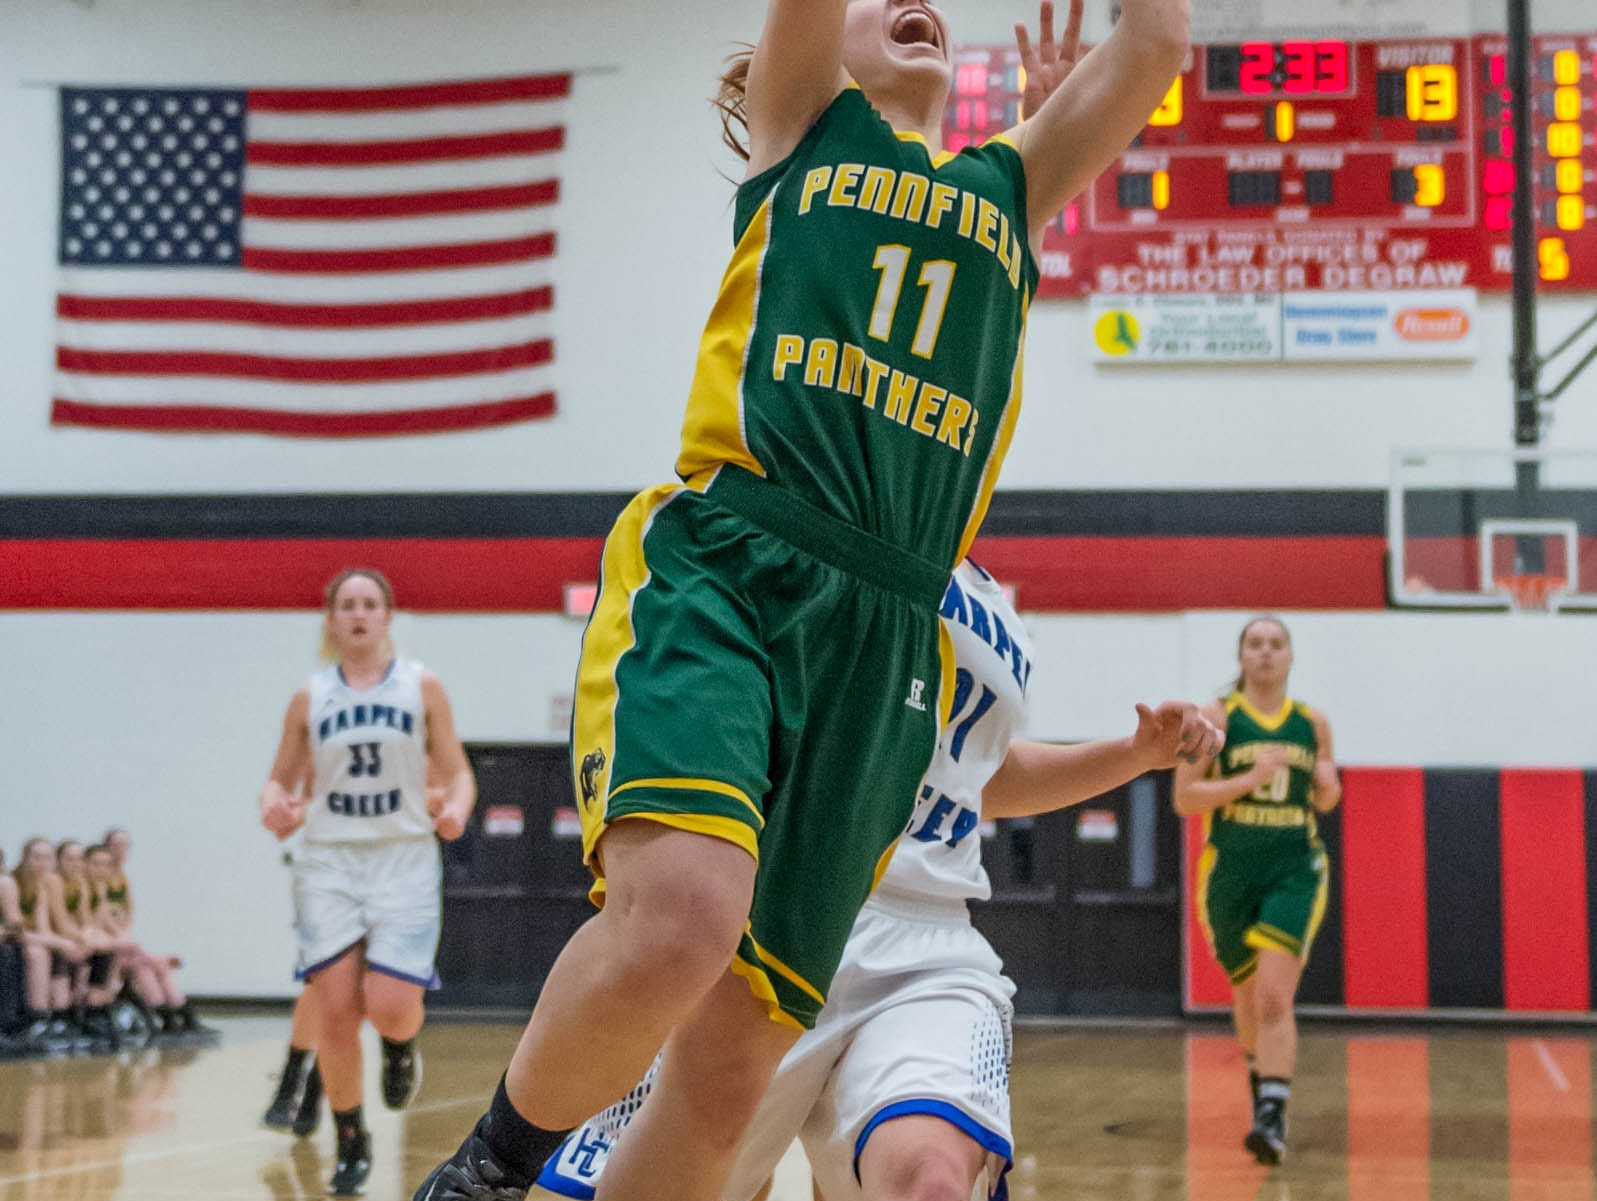 Pennfield's Melanie McIntyre (11) goes for the layup in first round of districts game at Marshall Monday evening.